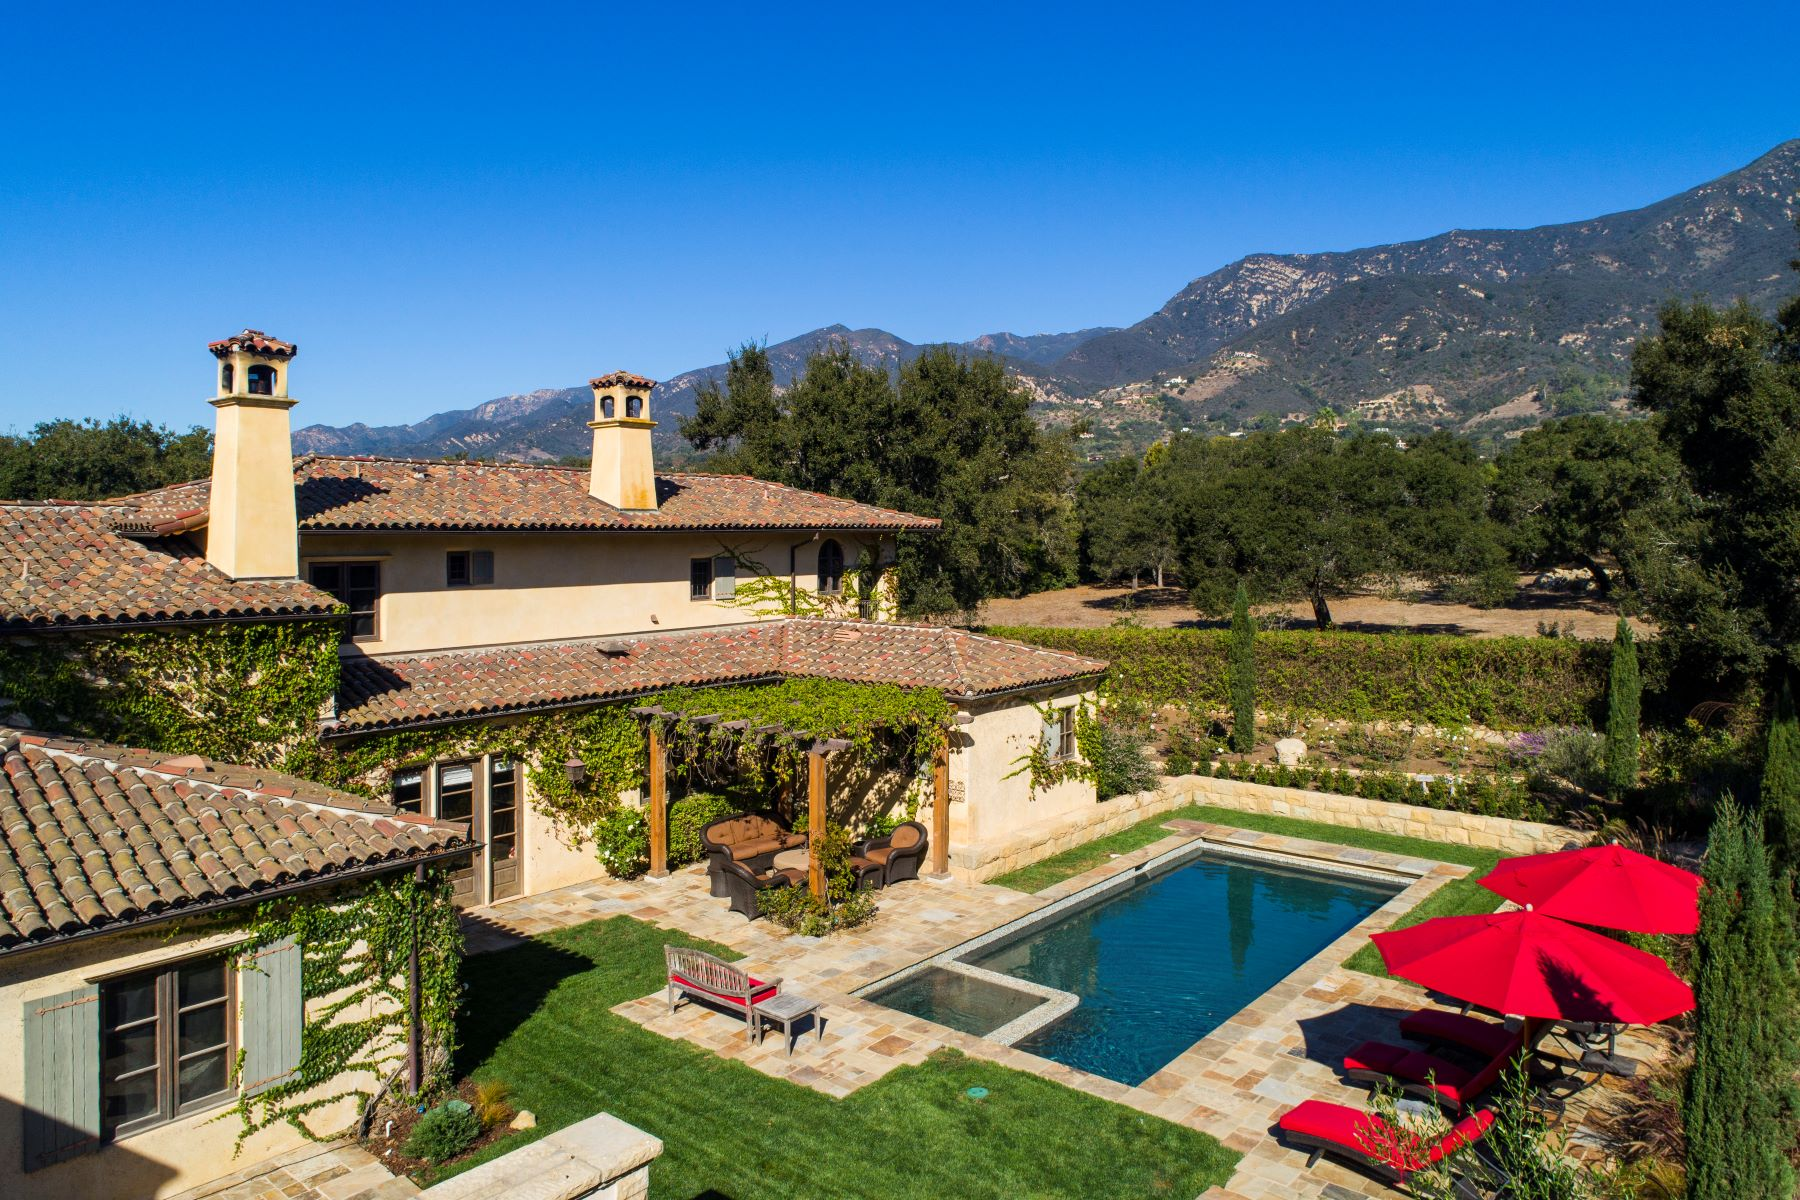 Property for Sale at Old World Montecito Mediterranean 2222 East Valley Road Montecito, California 93108 United States